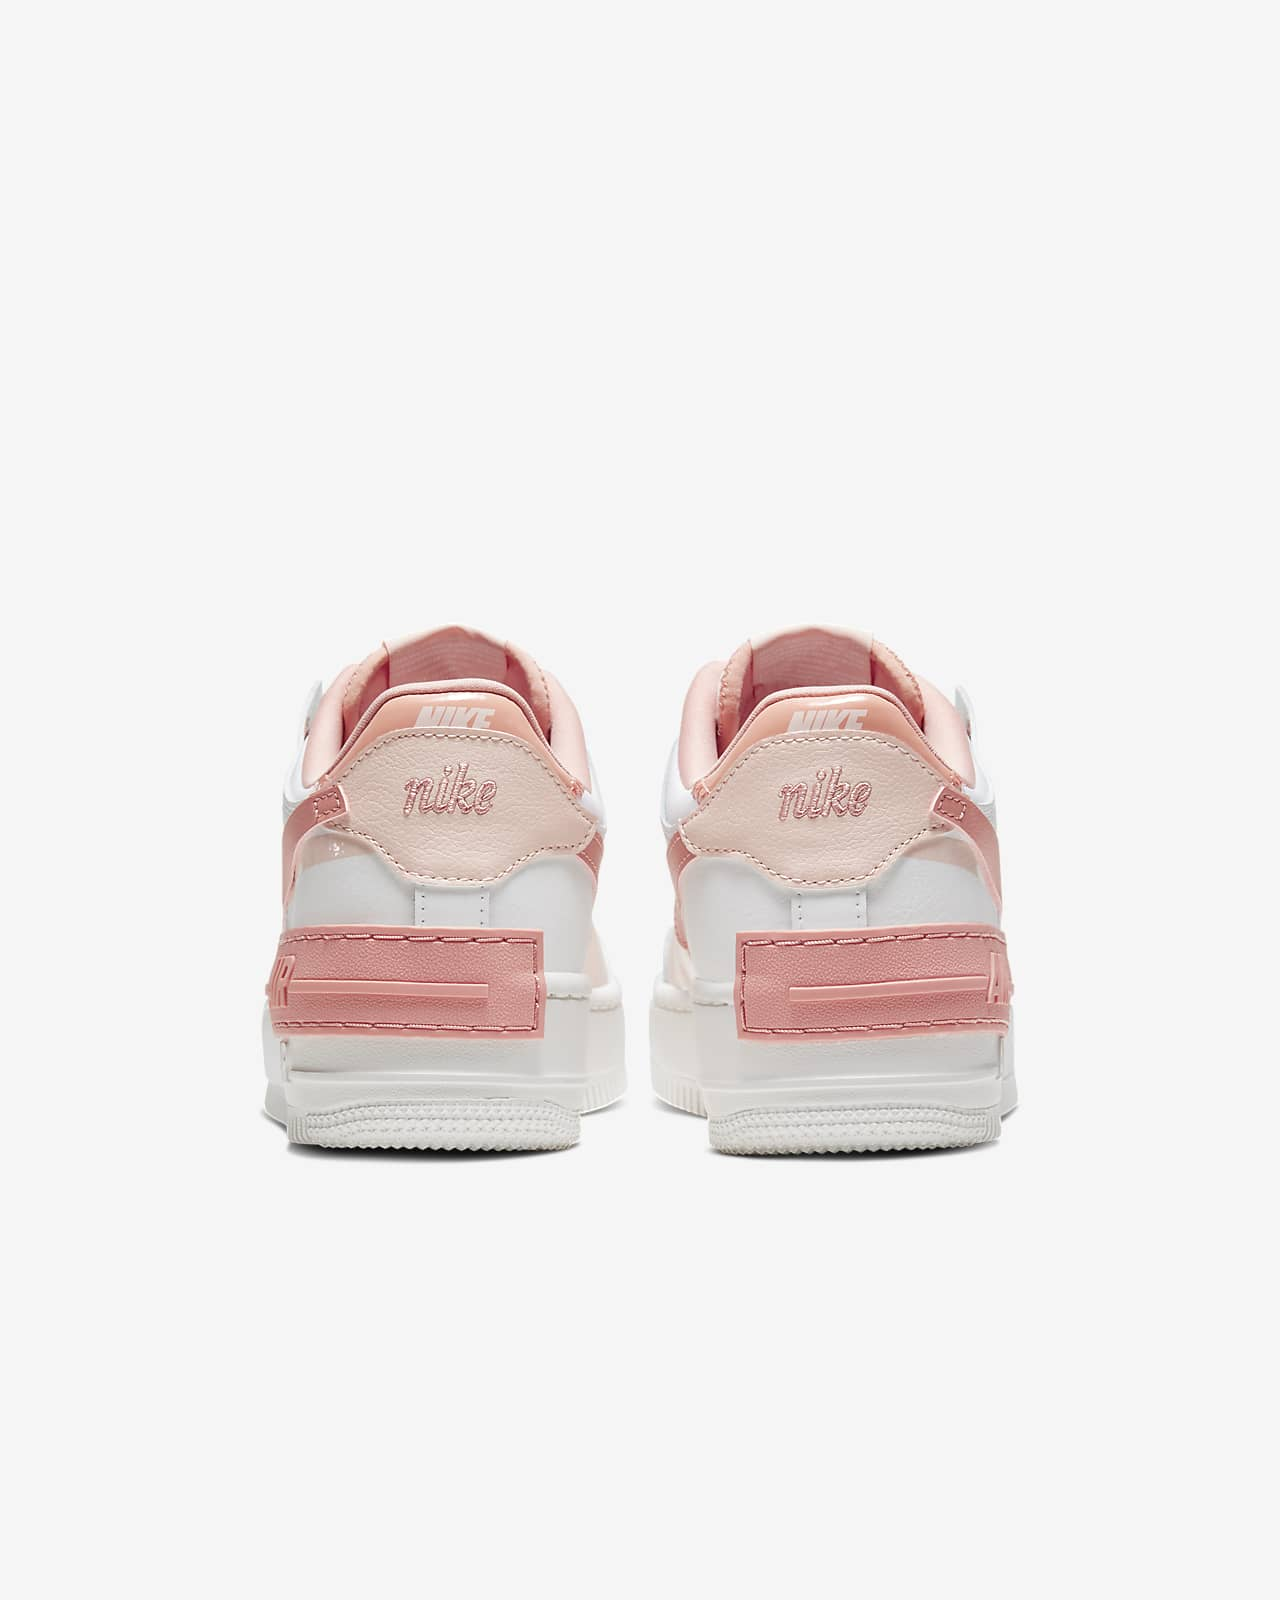 Nike Air Force 1 Shadow Women S Shoe Nike My Nike air force 1 sneakers light pink high top size 10 women leather & print euctop rated seller. nike air force 1 shadow women s shoe